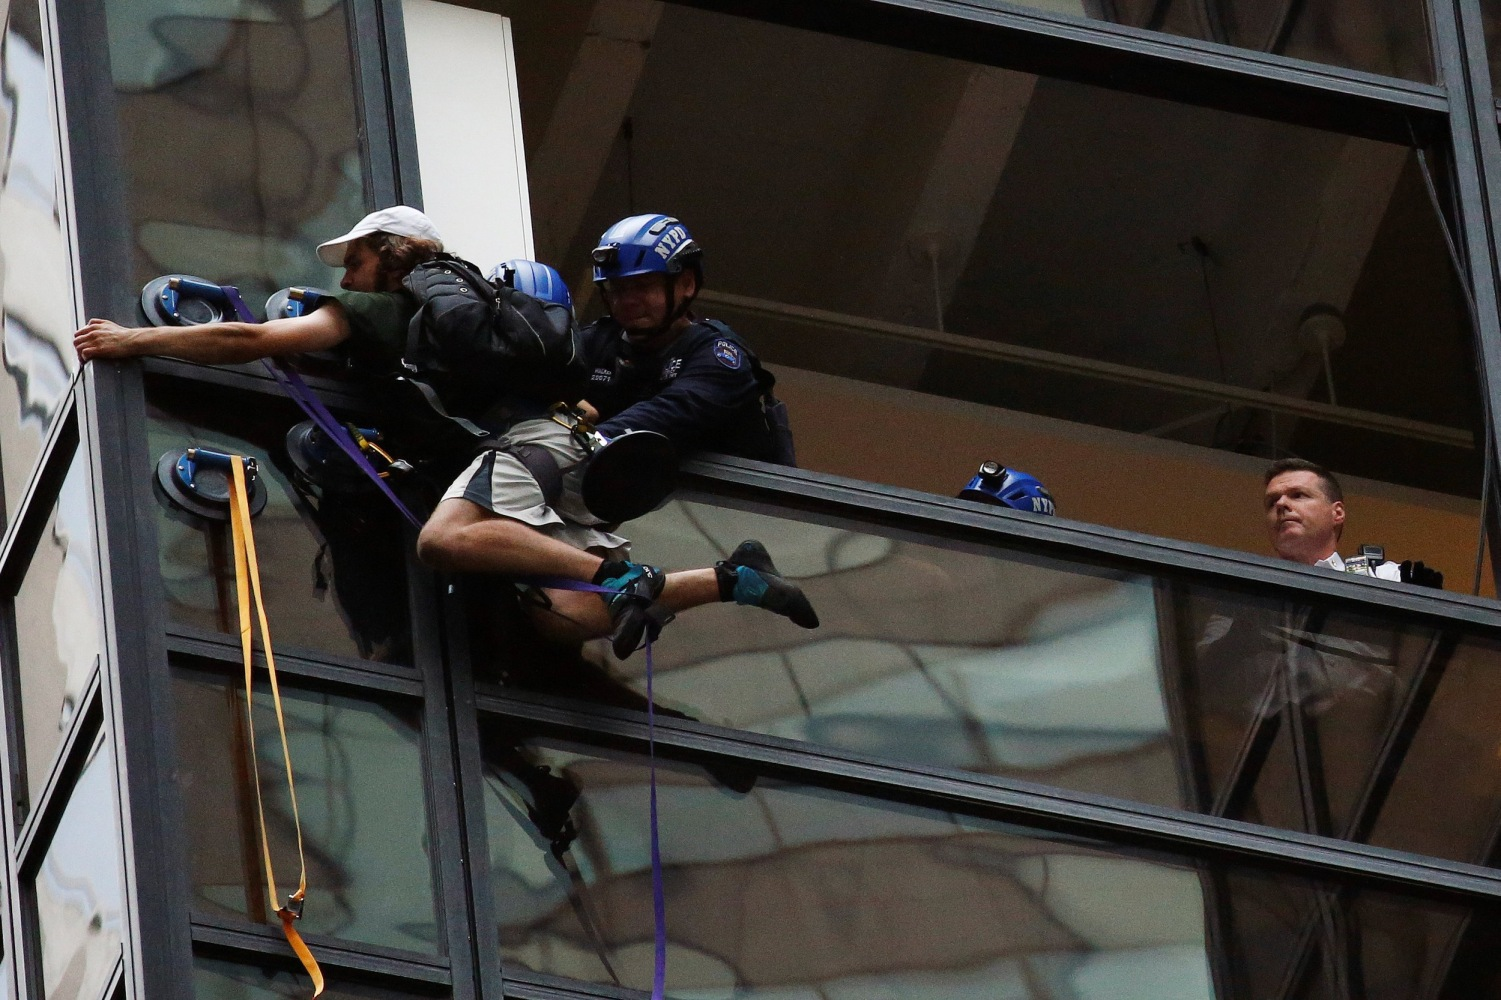 Man snatched by police after climbing Trump Tower in NY